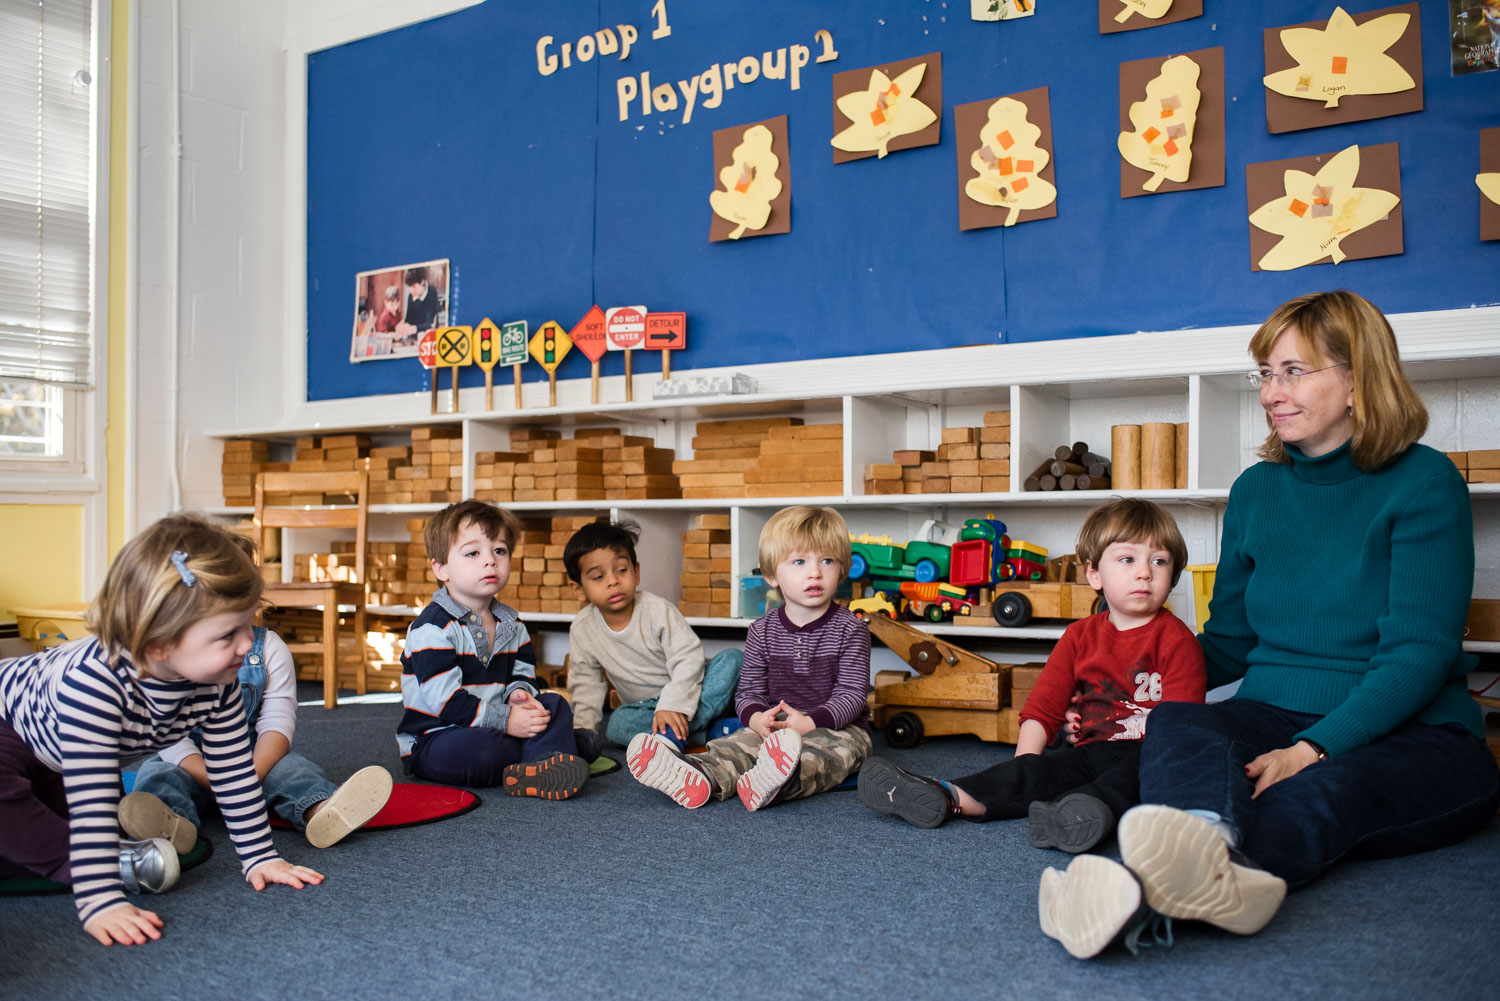 Kids gathered for story time at nursery school.